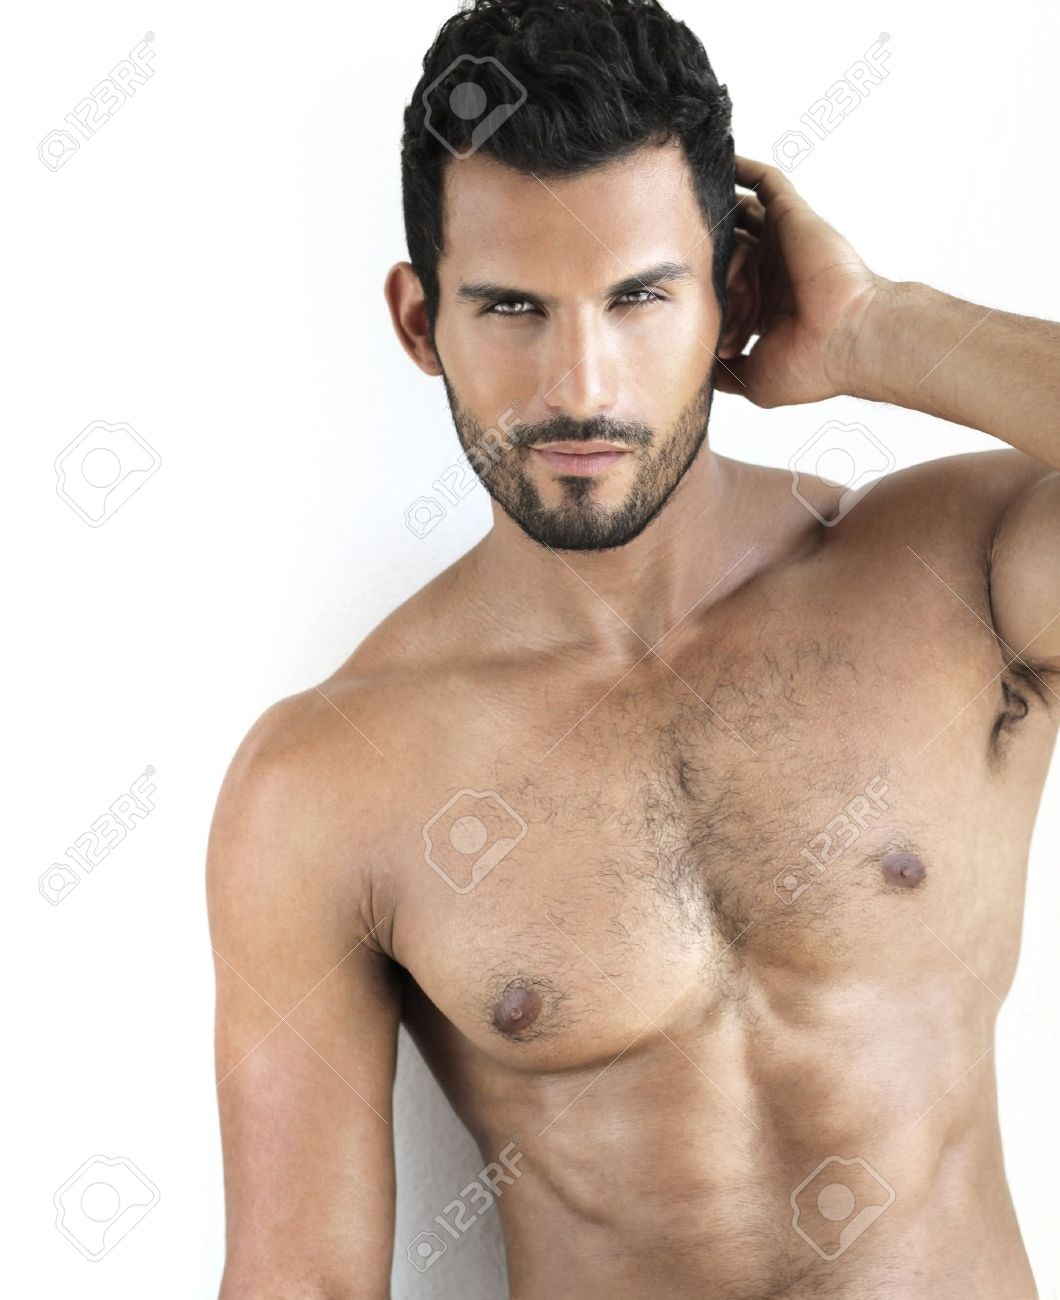 Sexy shirtless fit male model against white background Stock Photo - 15153331